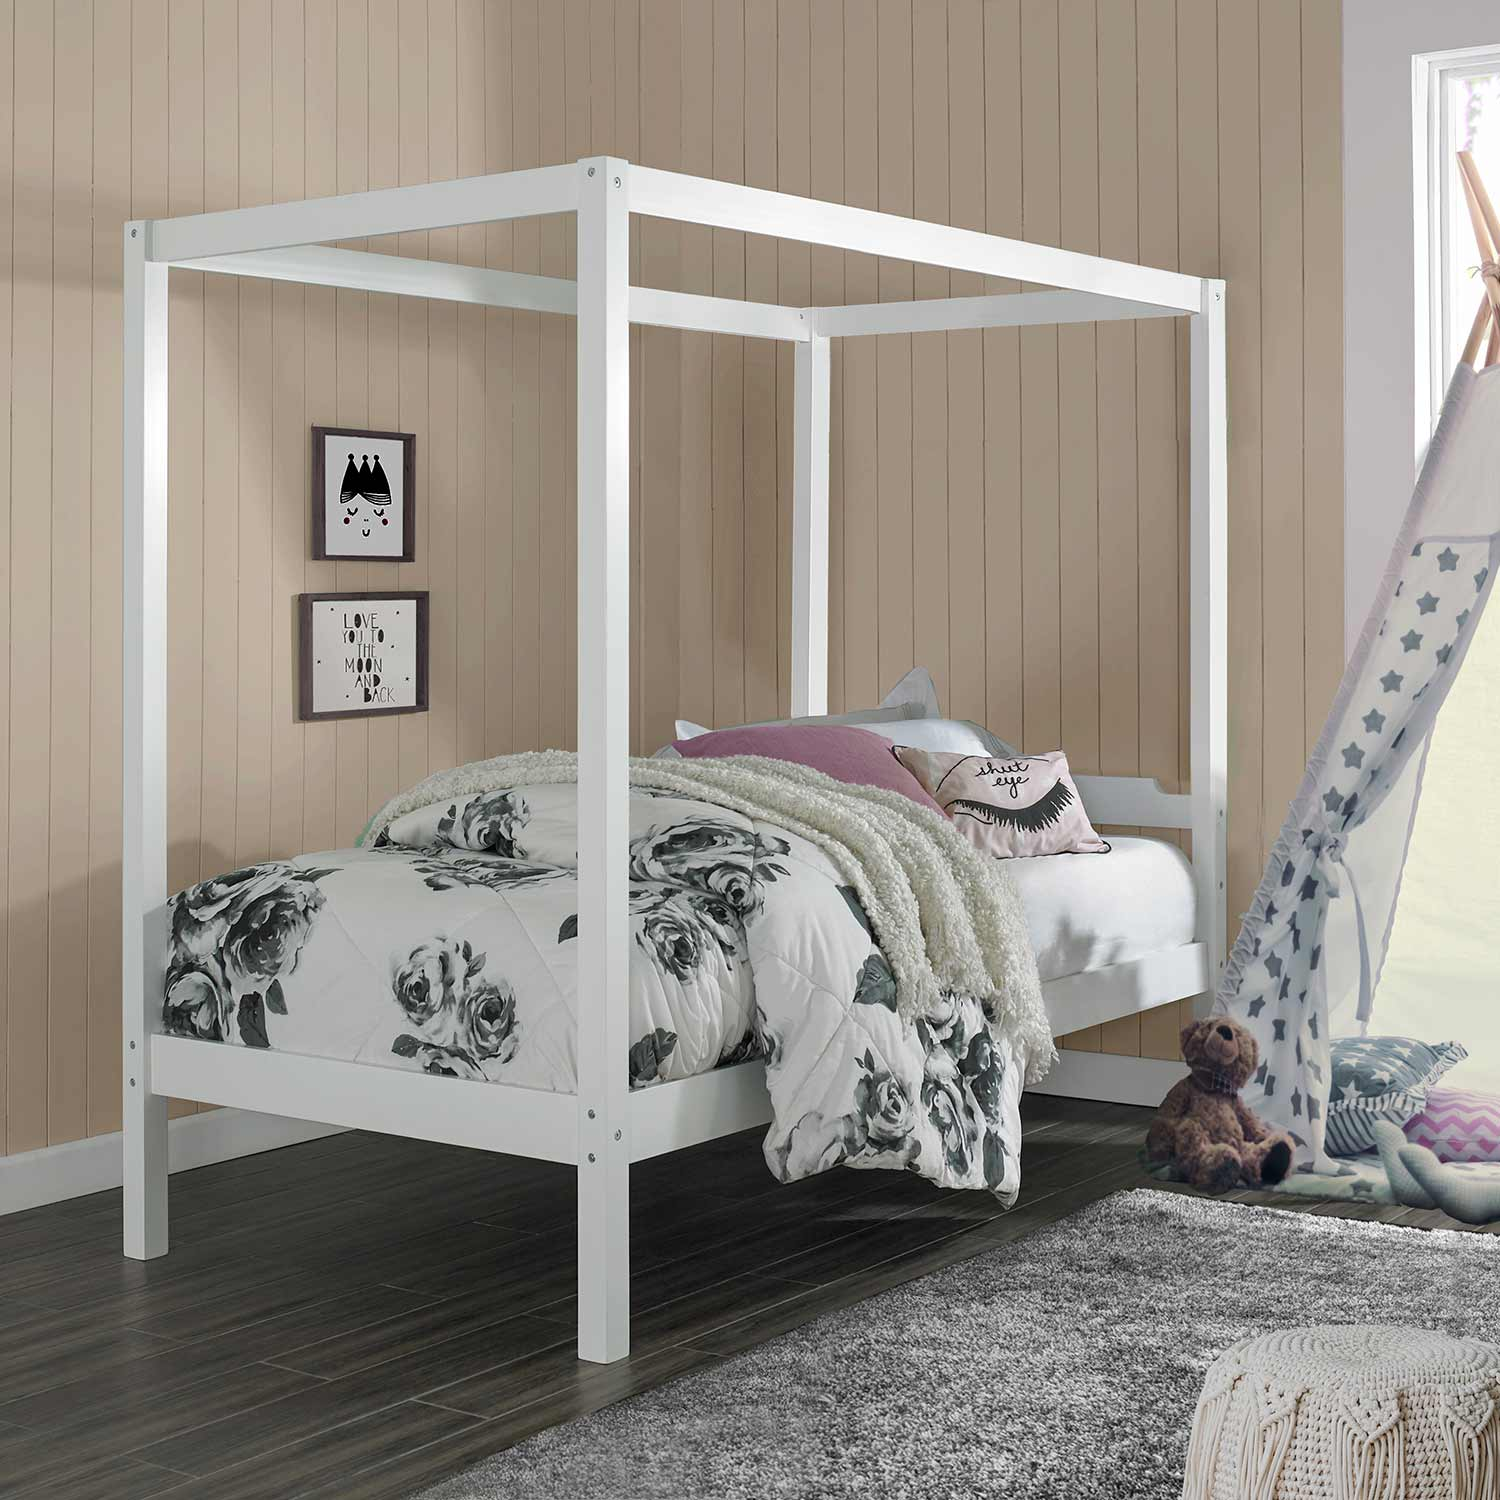 - Hillsdale Sutton Wood Canopy Twin Bed - White 7159-300